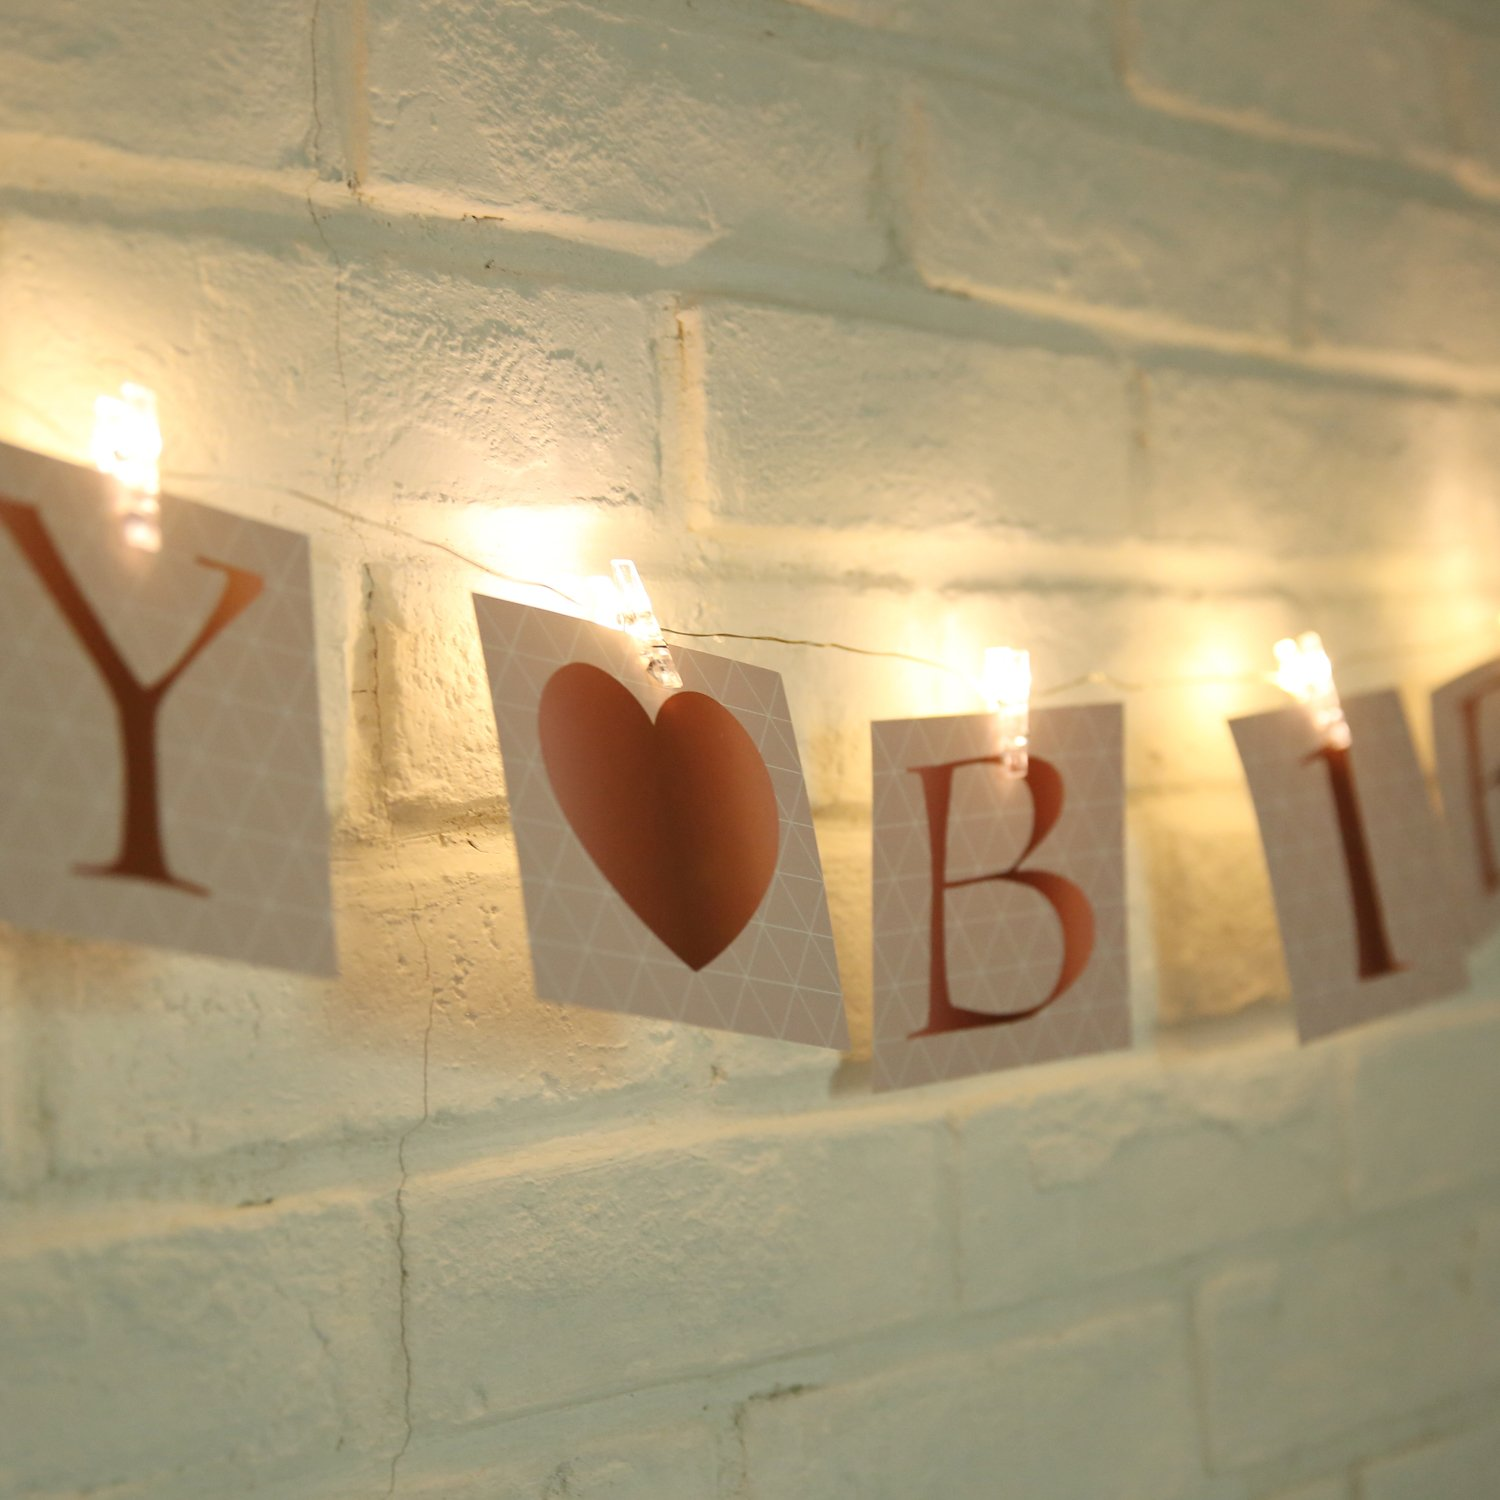 Aike Photo Clips String White Led Lighted Wedding Brithday Bedroom Garden Home Decor Indoor Out Door 15 Led Clear Clips 13 Foot 60 Letters in 4X4 inch Banners to Hang